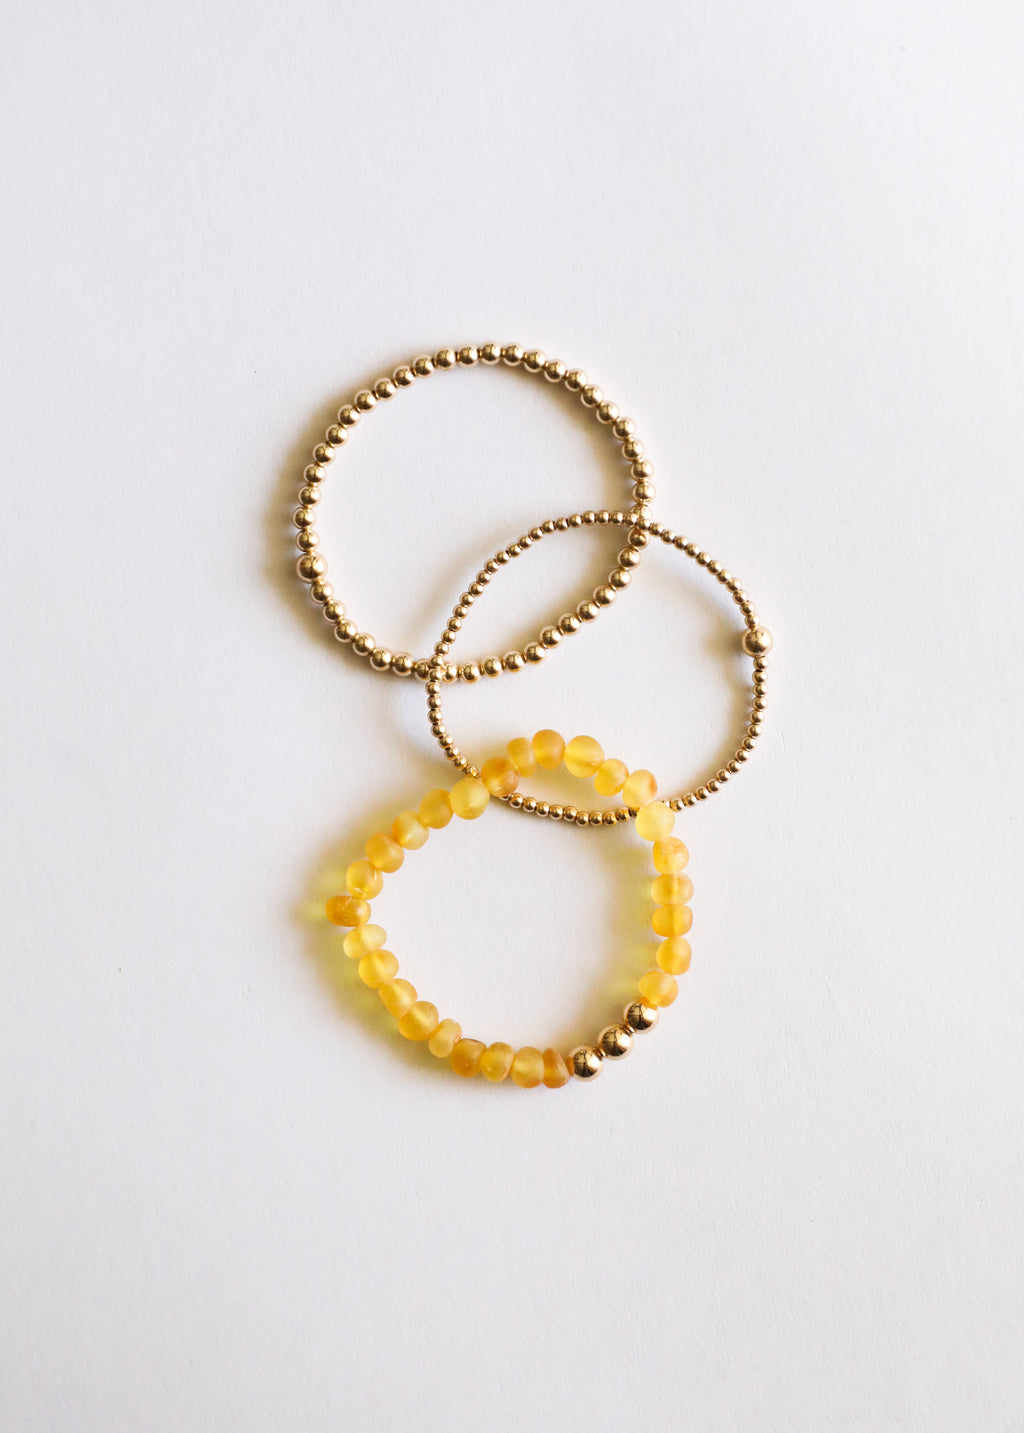 Raw Honey Amber + 14k Gold || Adult Bracelet Stack ||